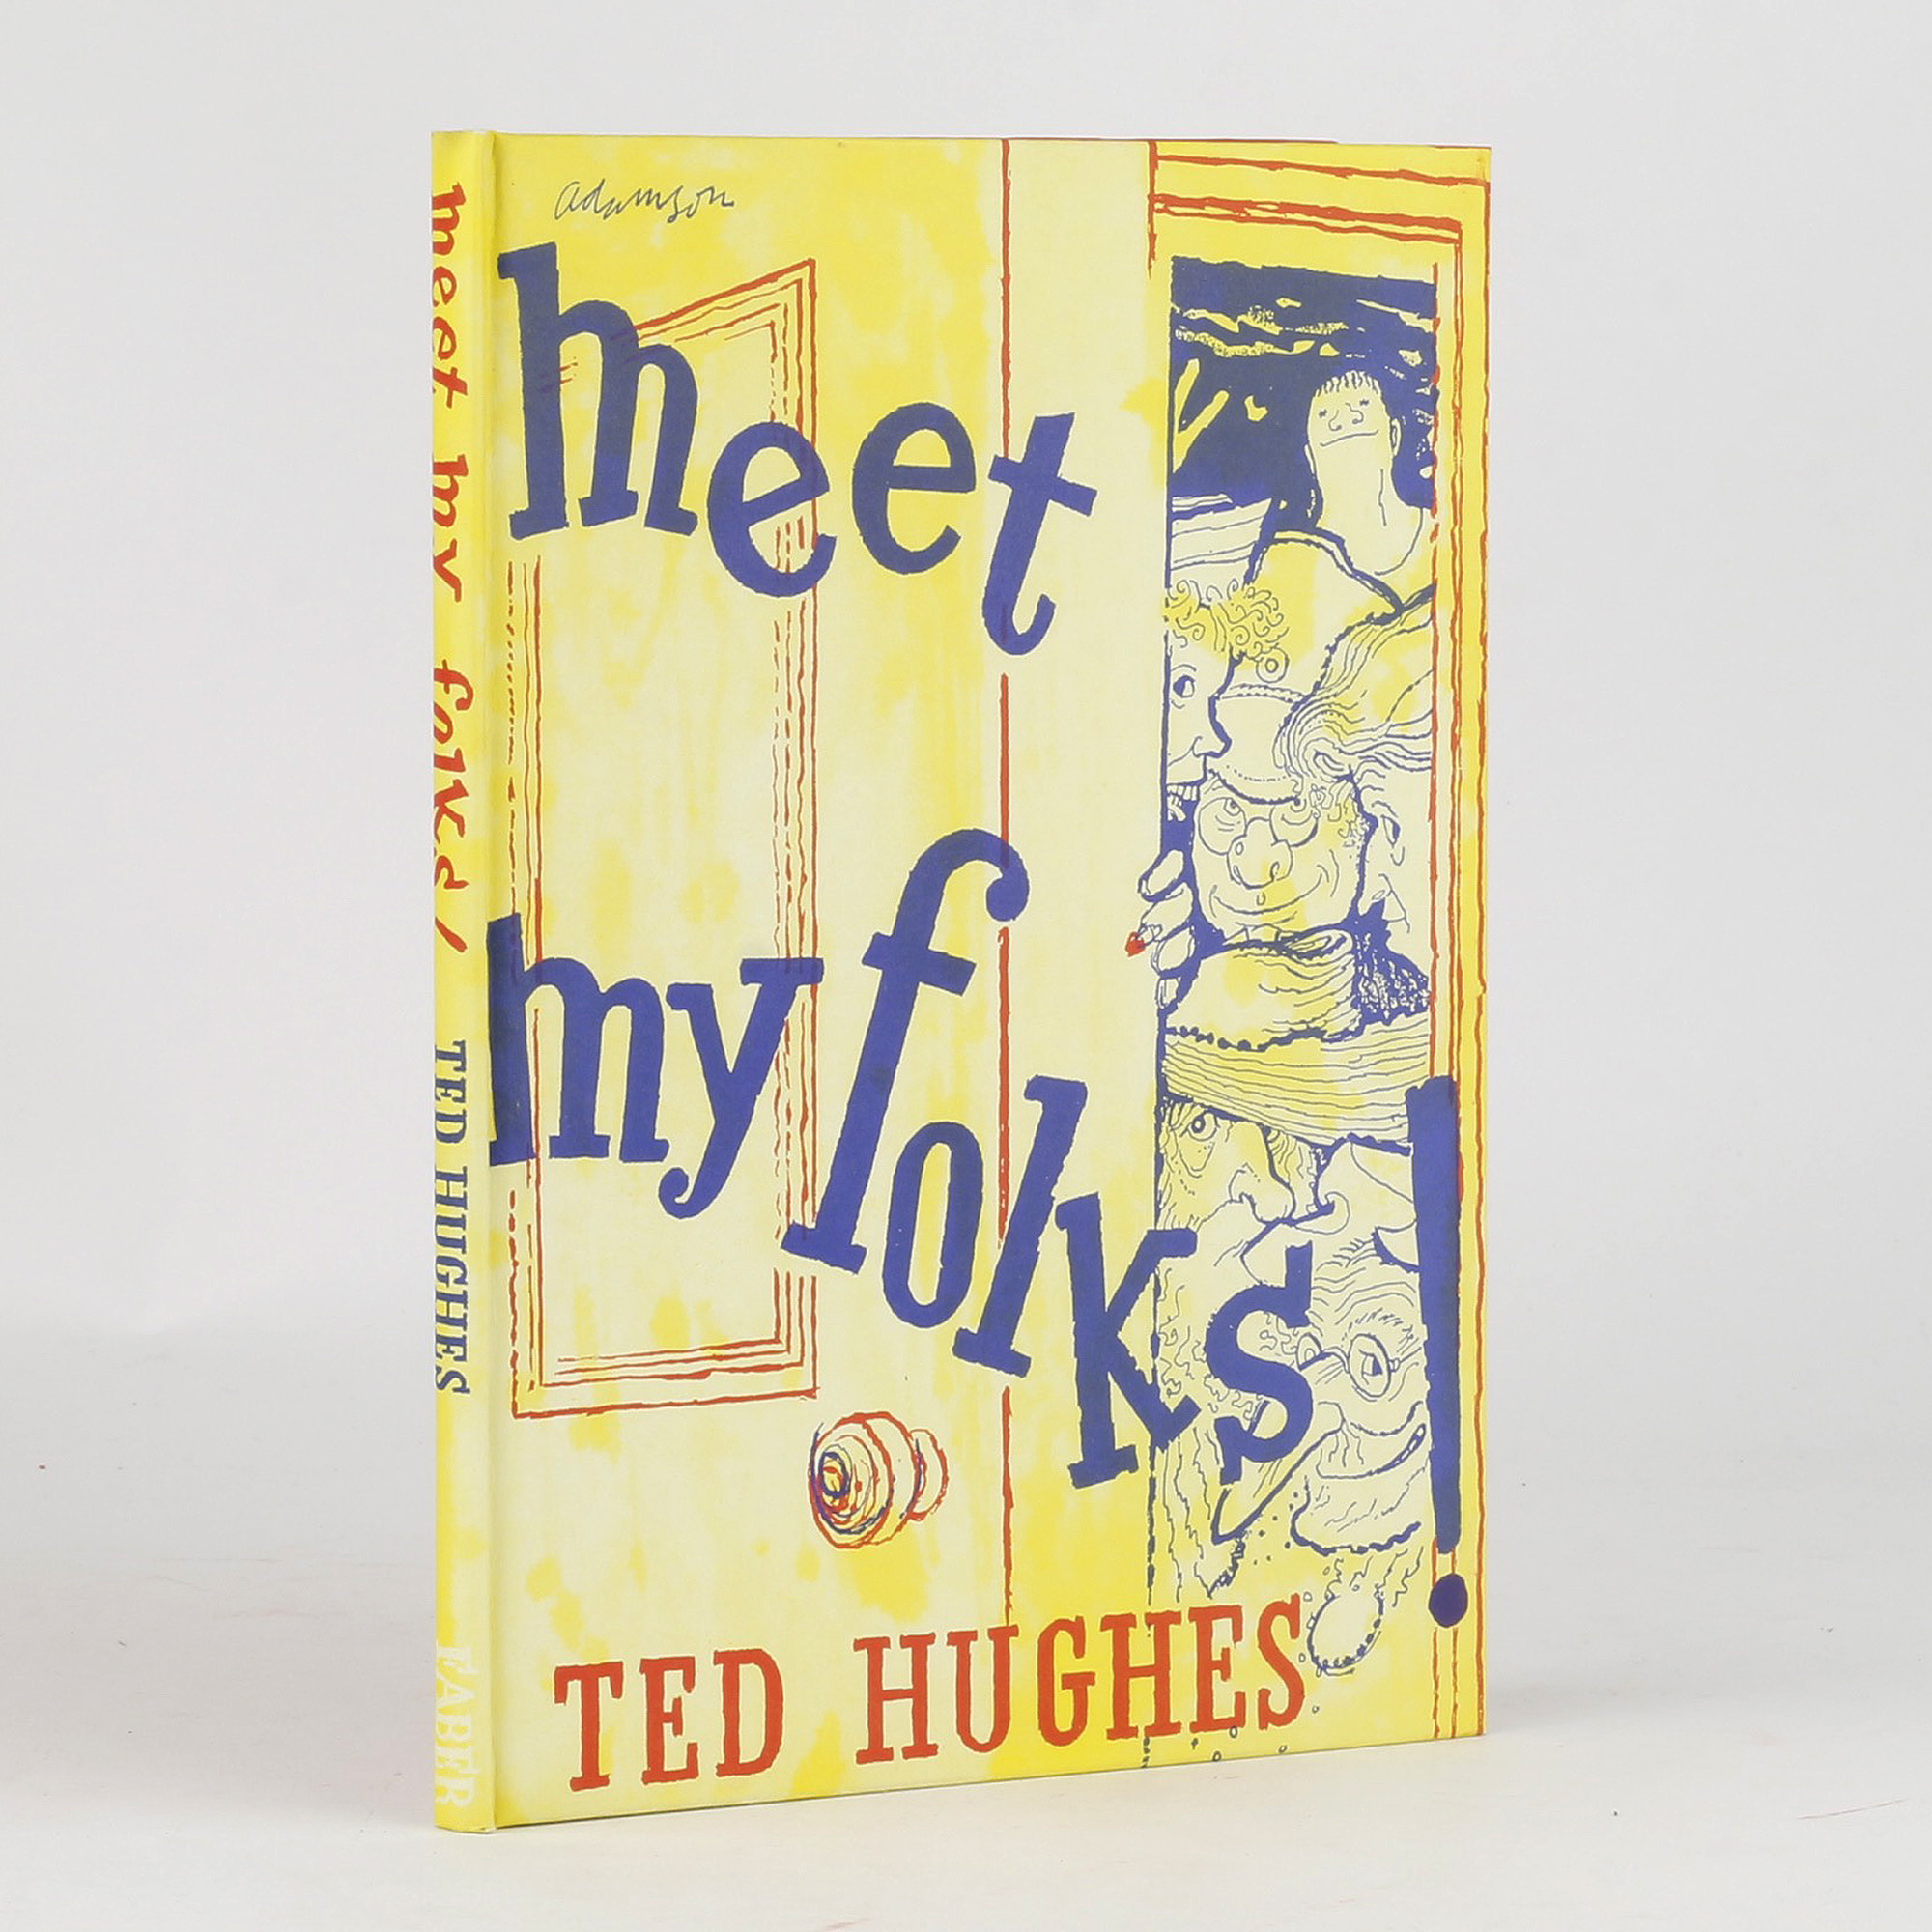 meet my folks hughes ted